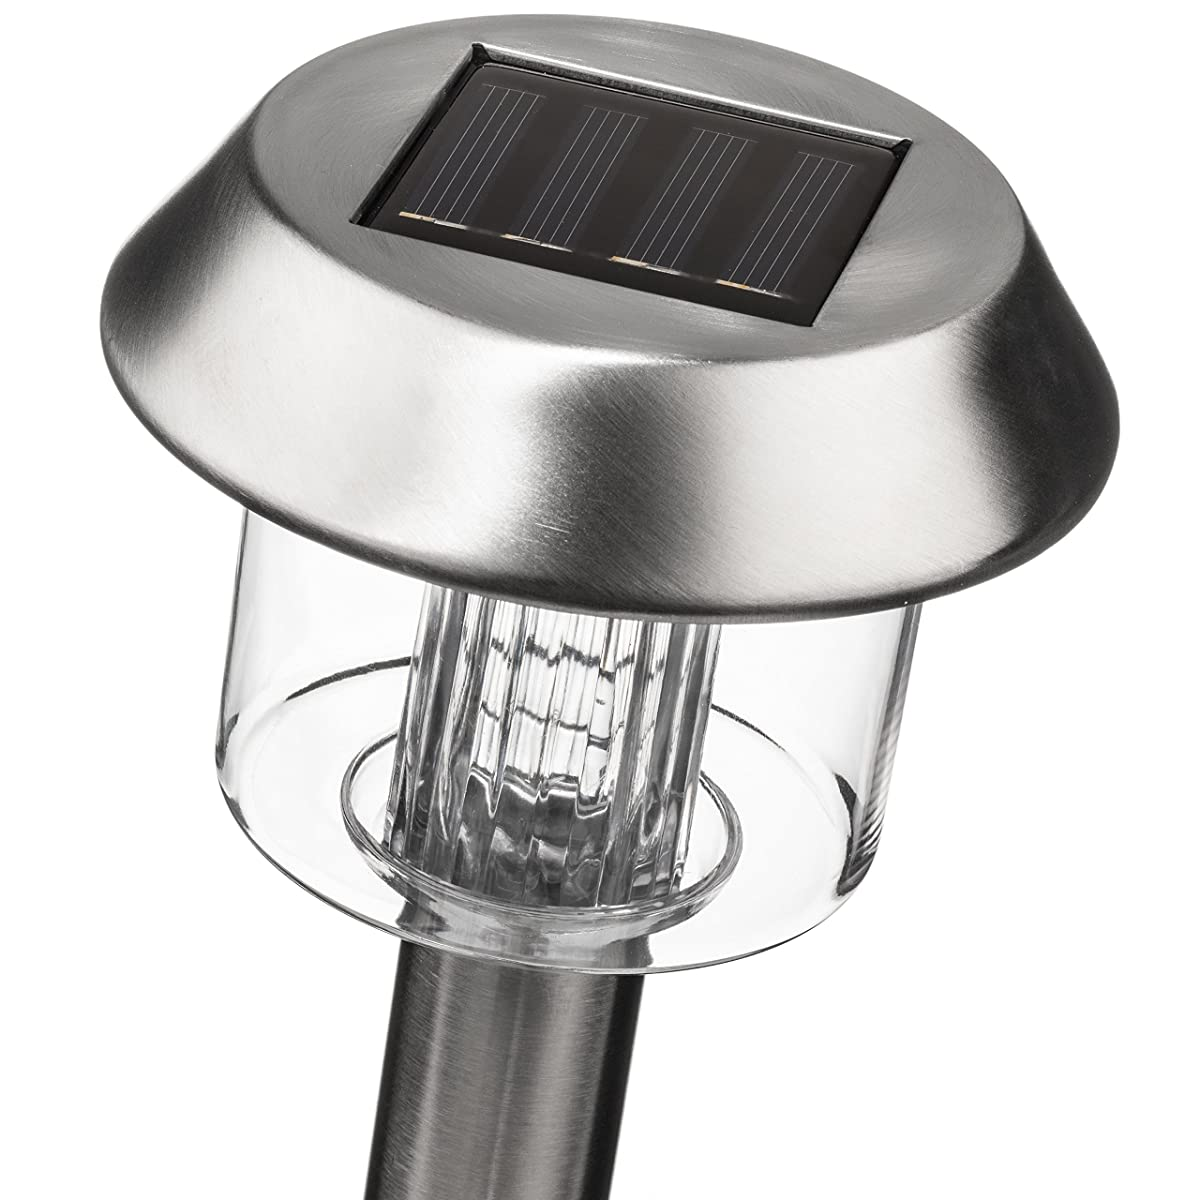 SolarGlow Stainless Steel LED Solar Garden Lights, 15 Lumens, Bright White, Waterproof (6 Pack)